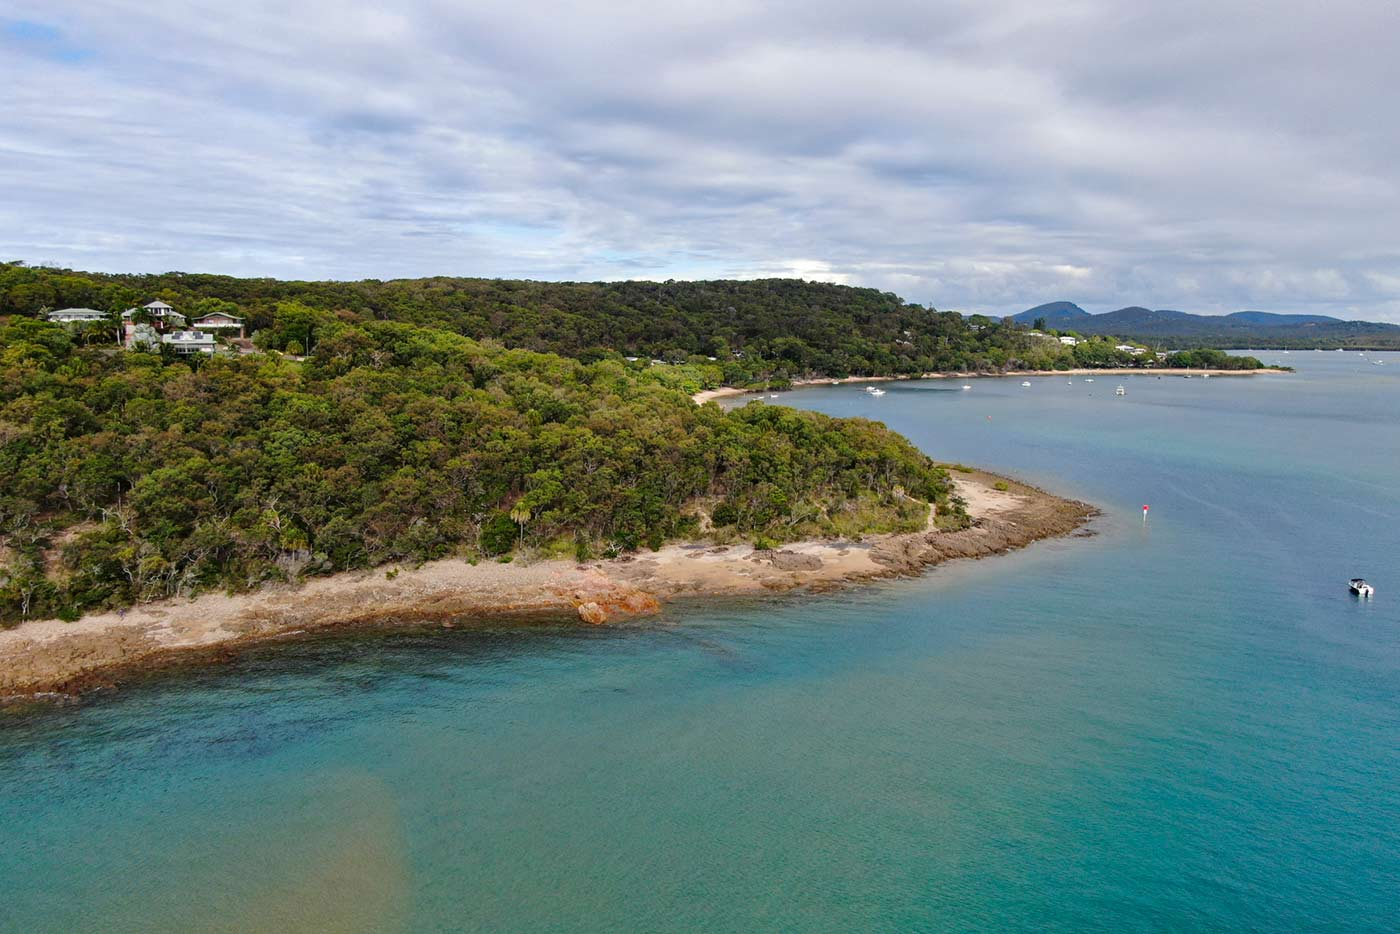 Colour photograph of a shoreline featuring houses amongst dense vegetation and boats docked in the distance. - click to view larger image